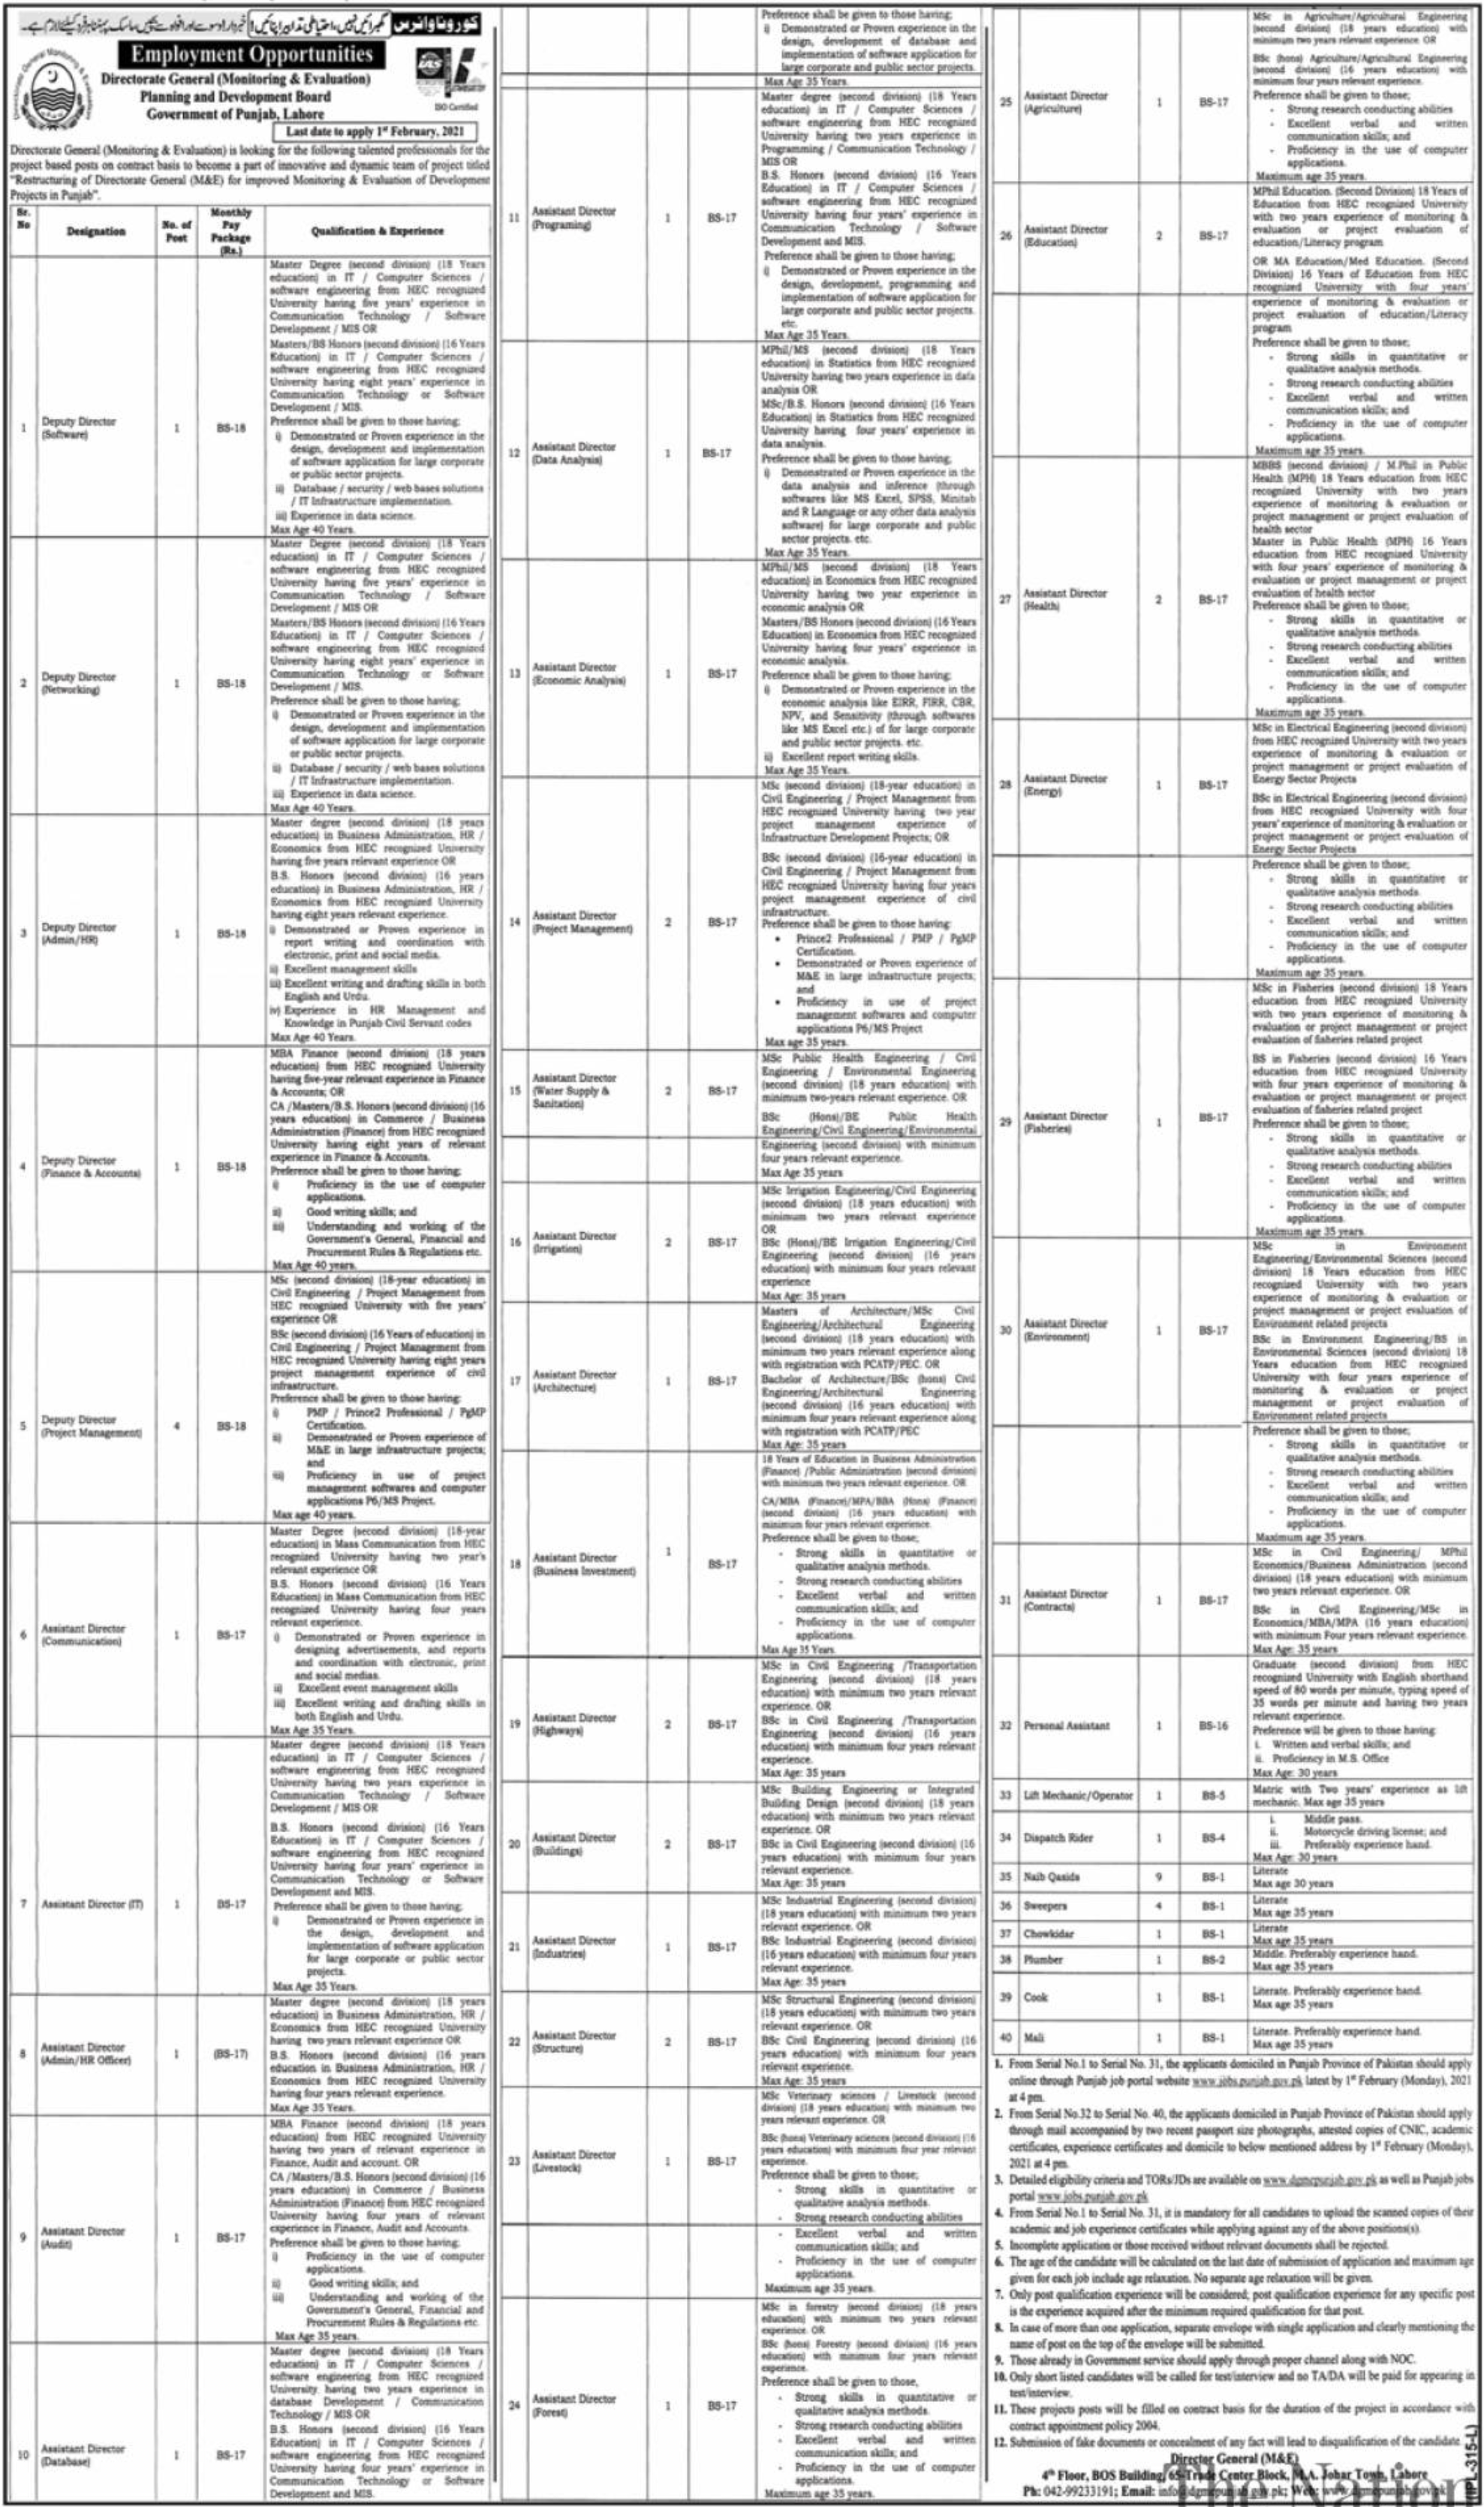 Planning and Development Board Government of Punjab Lahore Jobs January 2021